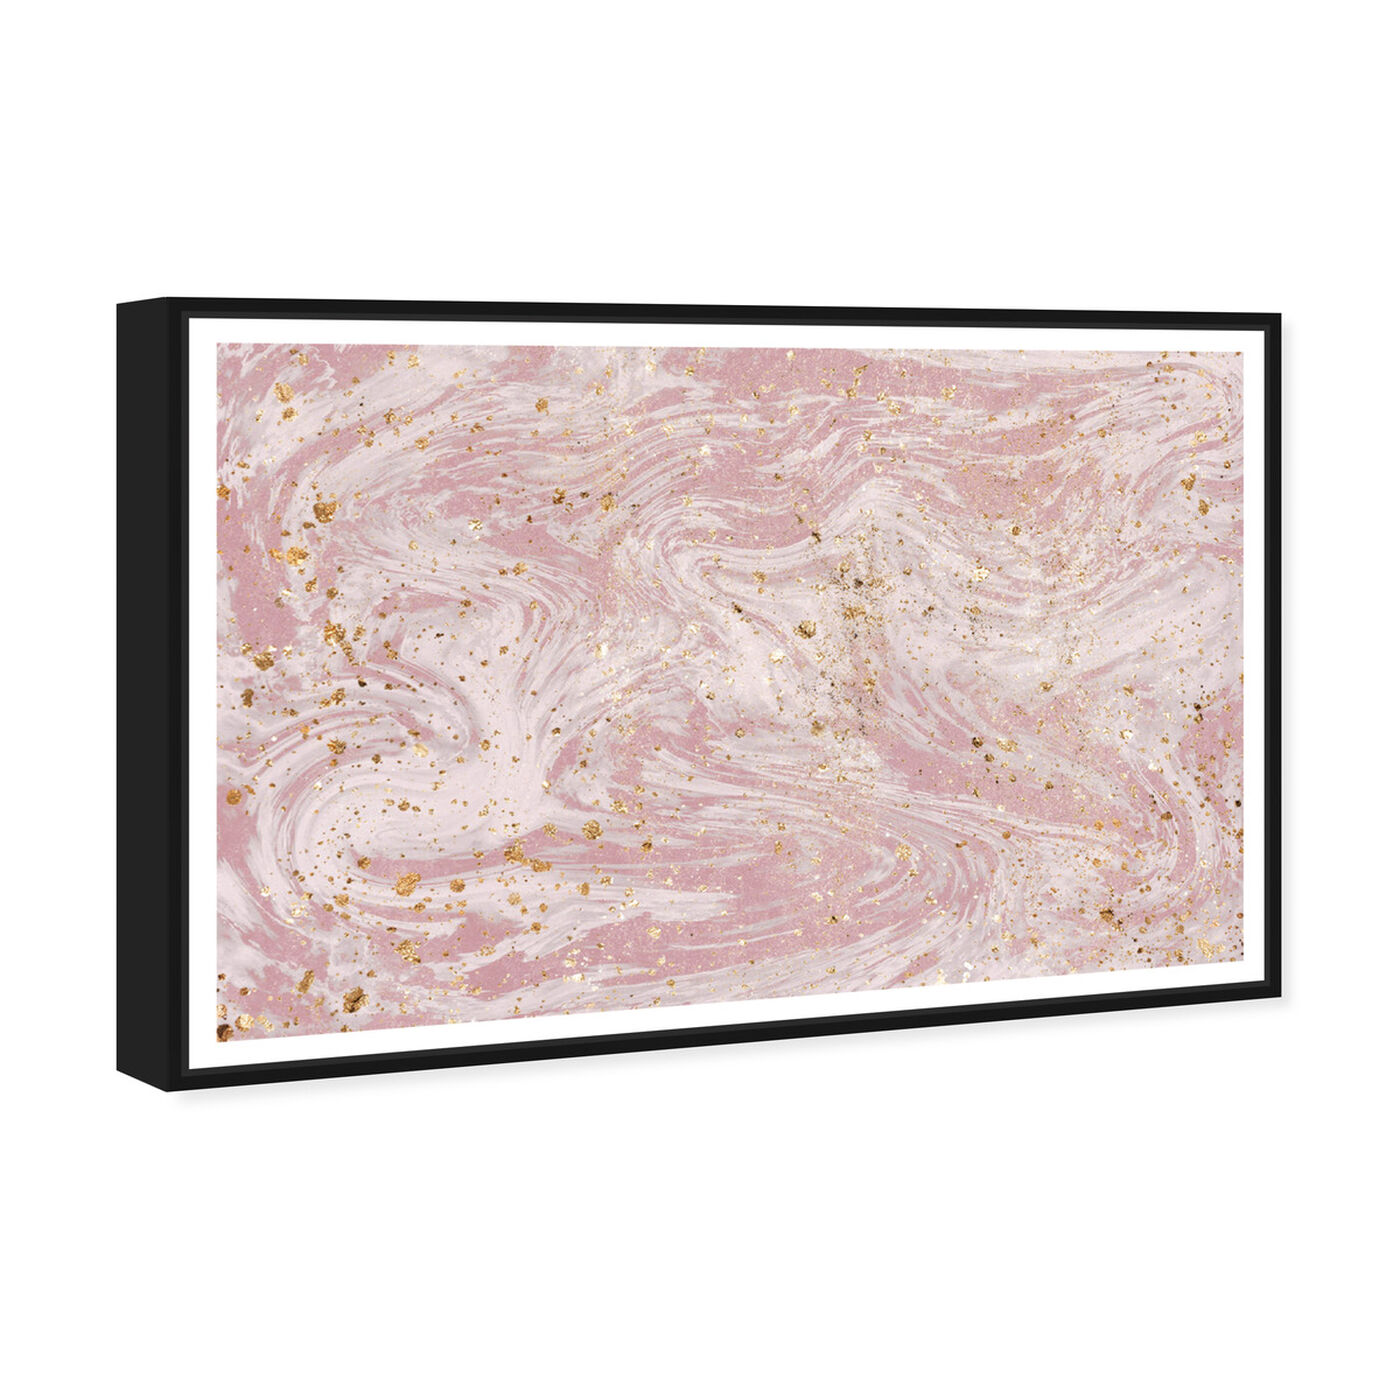 Angled view of Dream Marble featuring abstract and textures art.